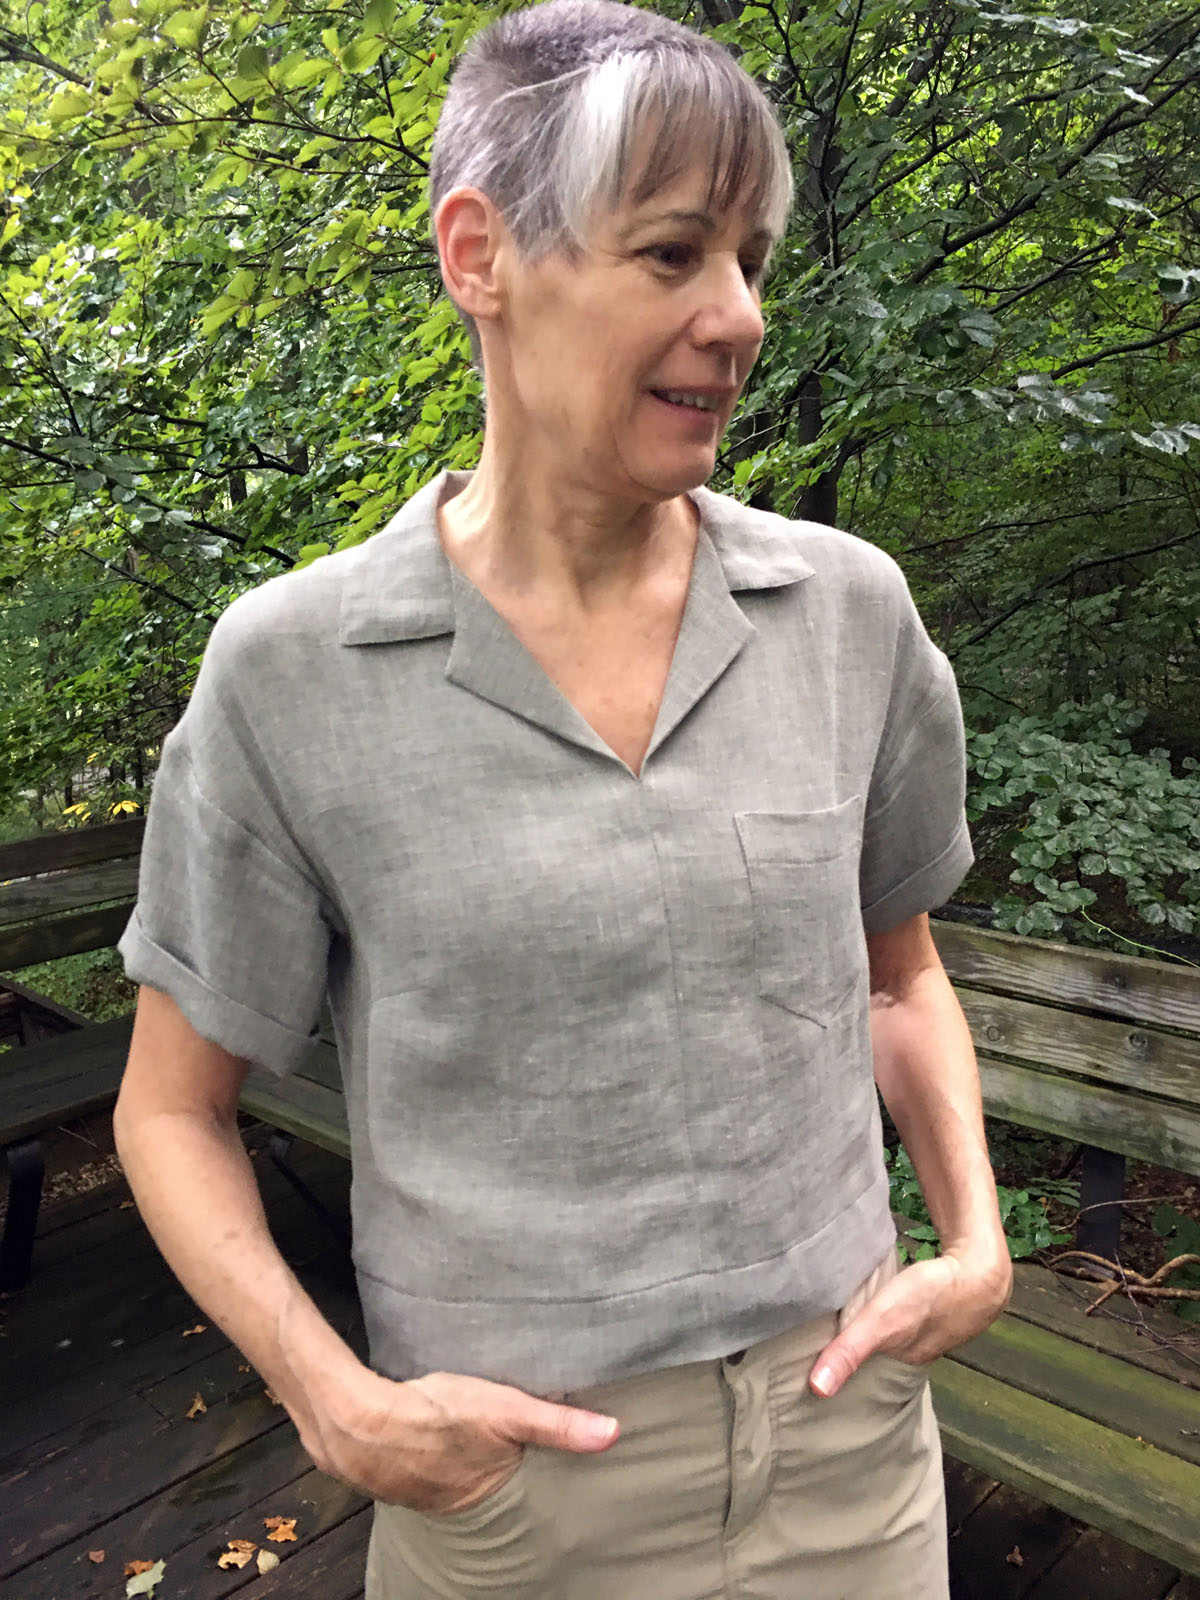 Sewing self-care project: Becky Fulgoni made a linen top from an unworn dress